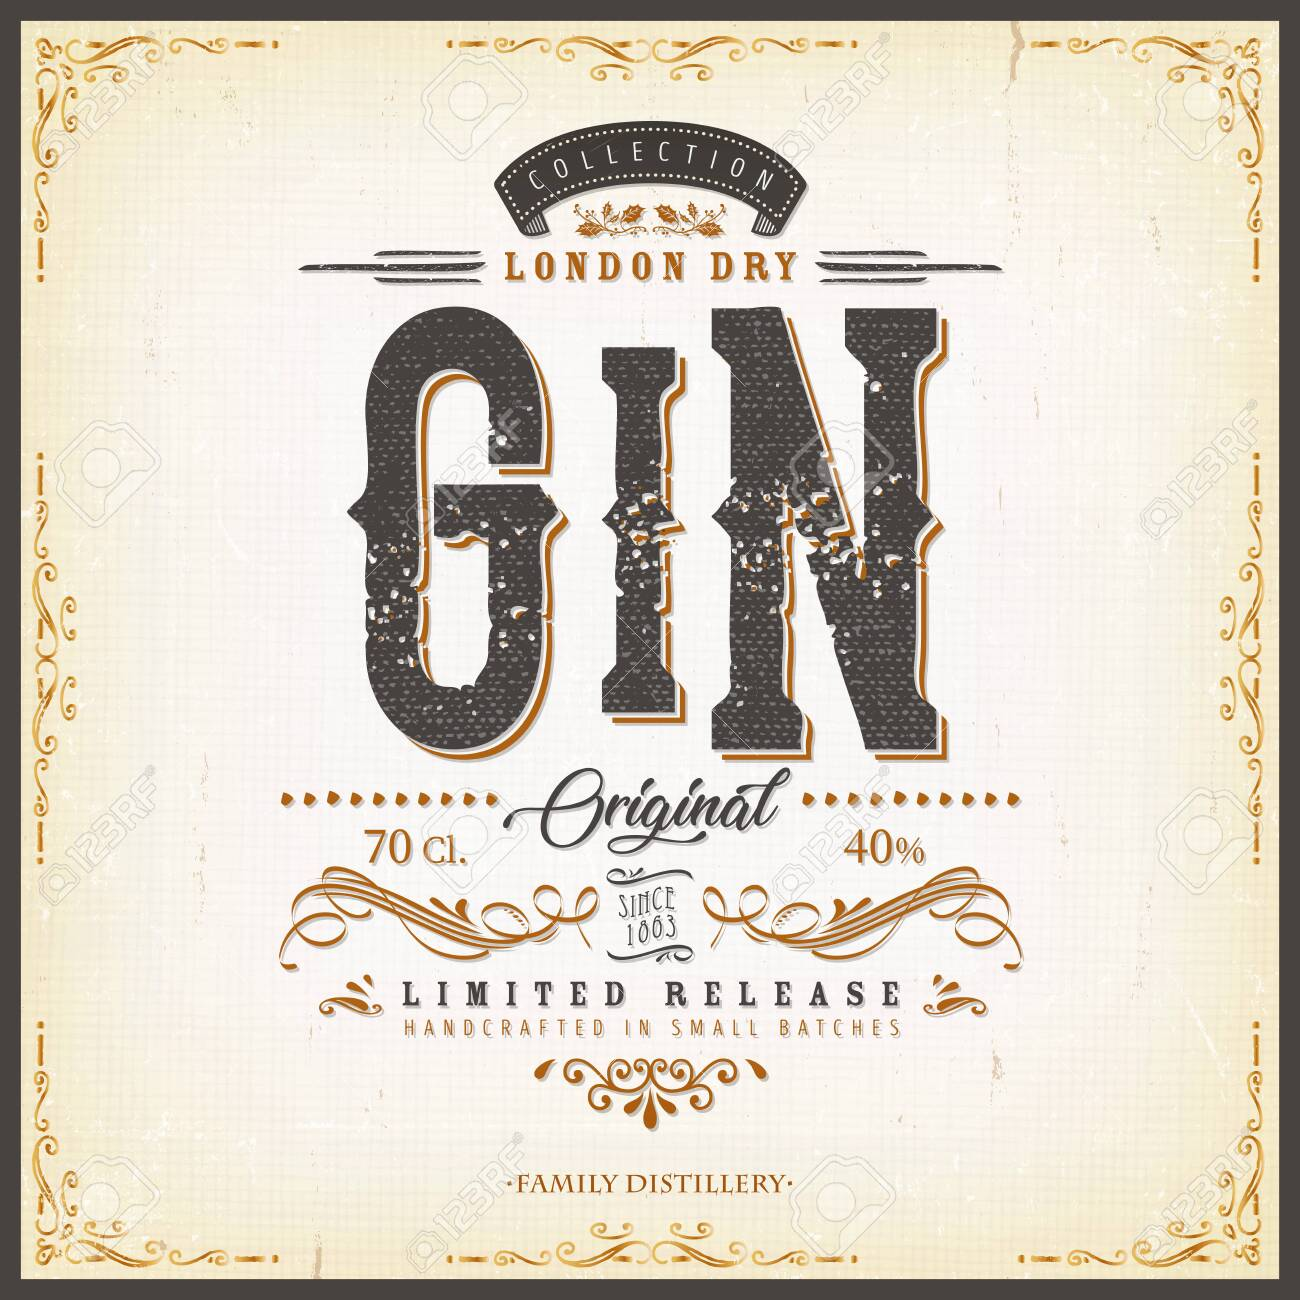 Illustration of a vintage design elegant london dry gin label, with crafted lettering, specific product mentions, textures and hand drawn patterns - 138430318